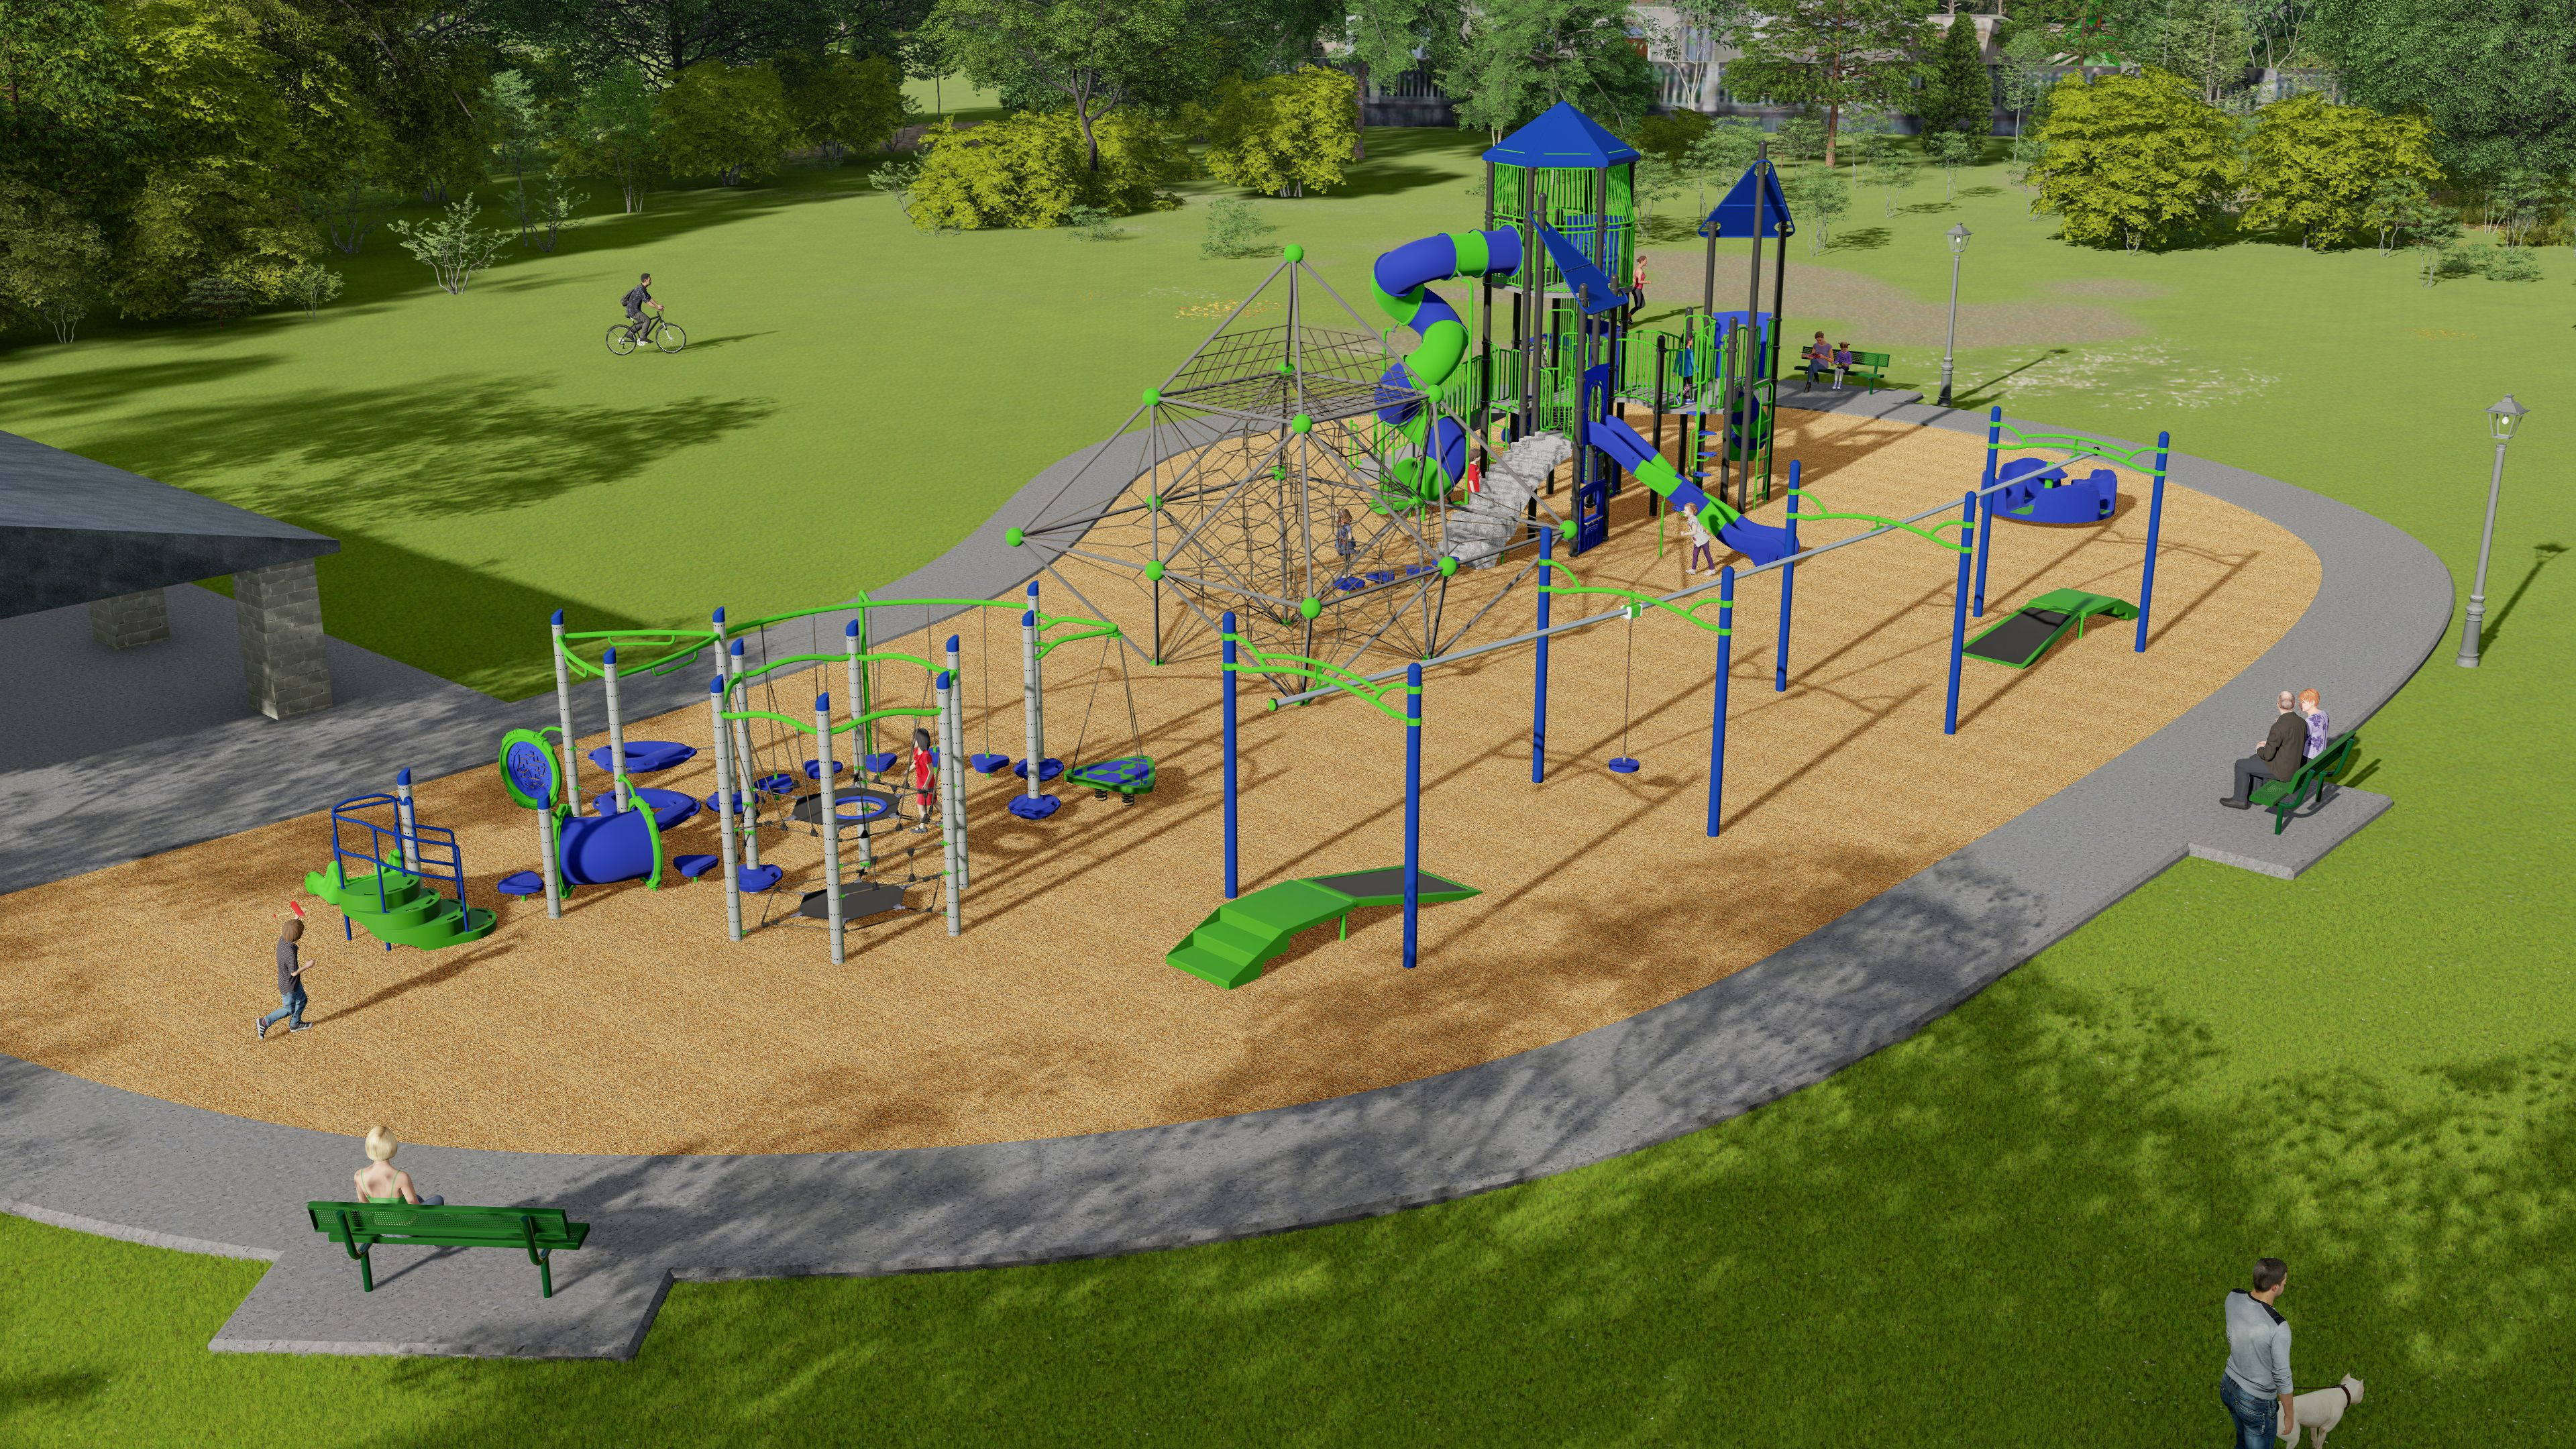 Veterans Memorial Park Grand Opening and Ribbon Cutting planned for February 22